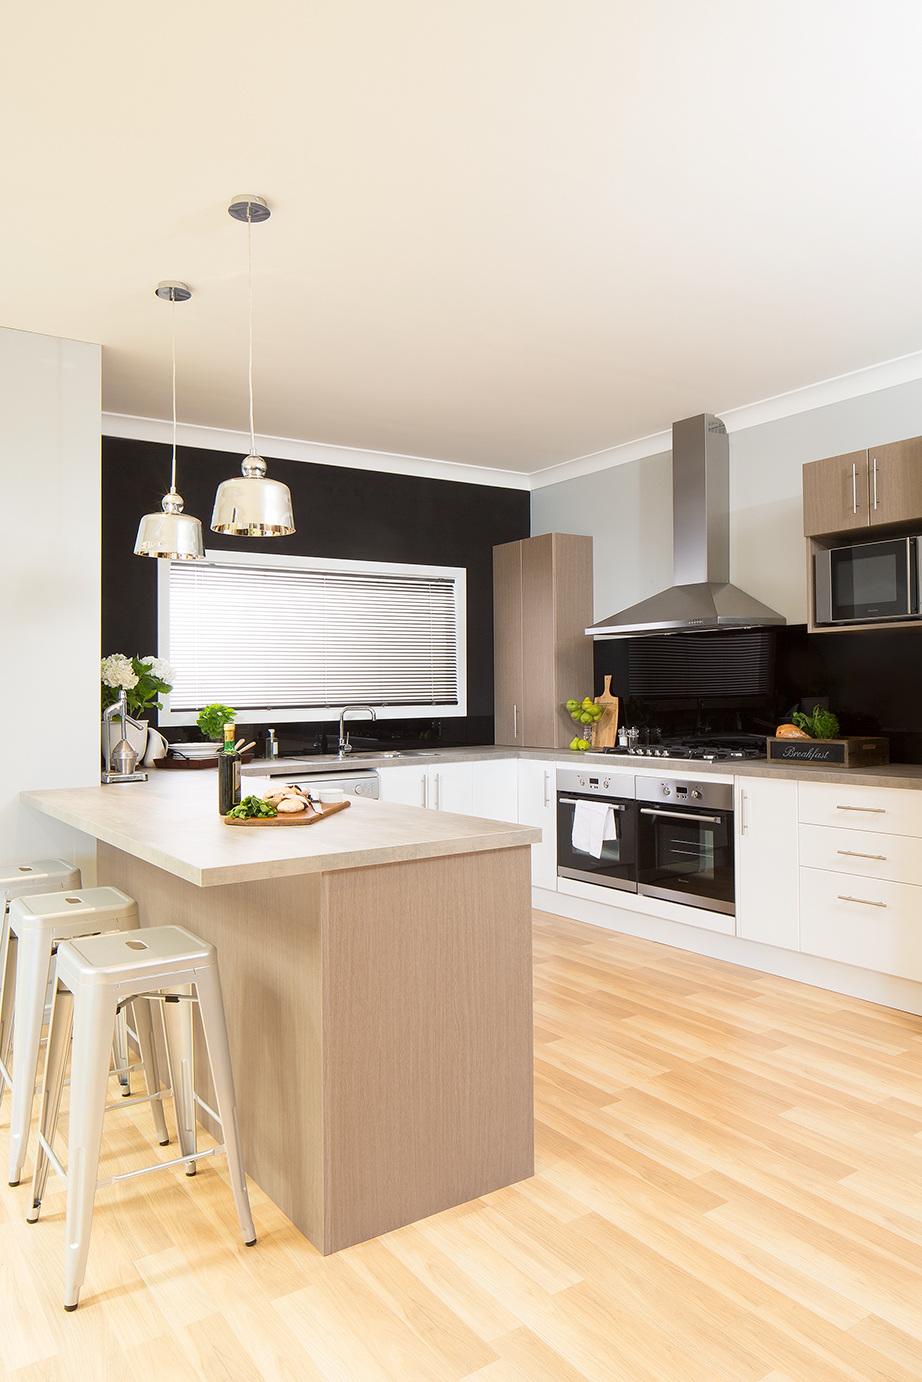 Kitchen gallery the complete package kaboodle kitchen for Complete kitchen cabinet packages